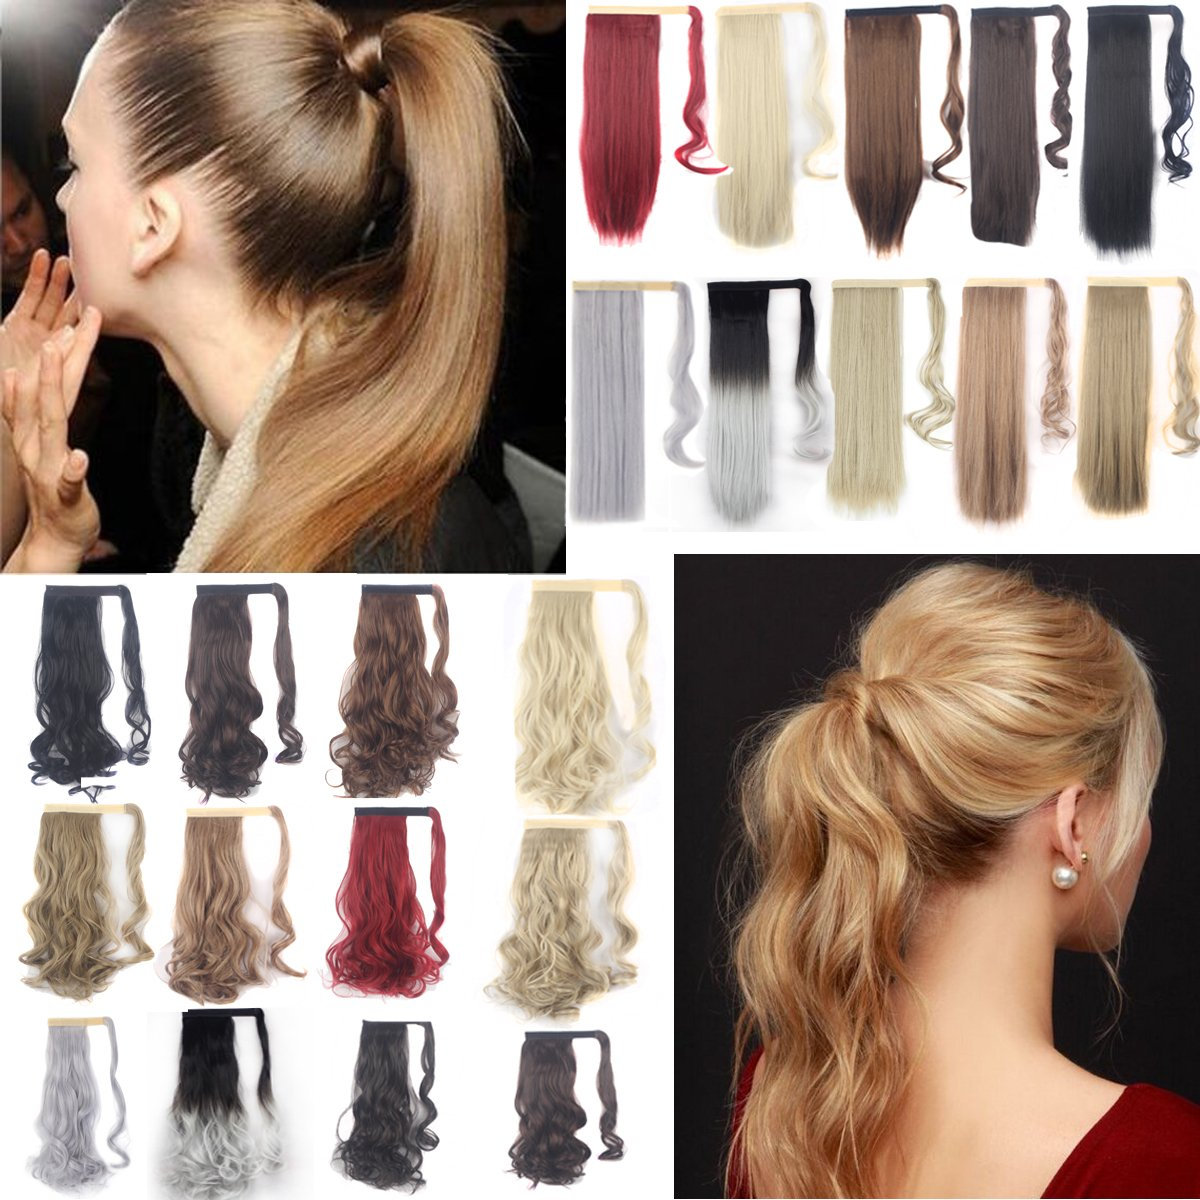 FLORATA 24 Clip in hair extensions Wrap Around Ponytail Long Straight Hairpiece for Women(Sliver Grey)